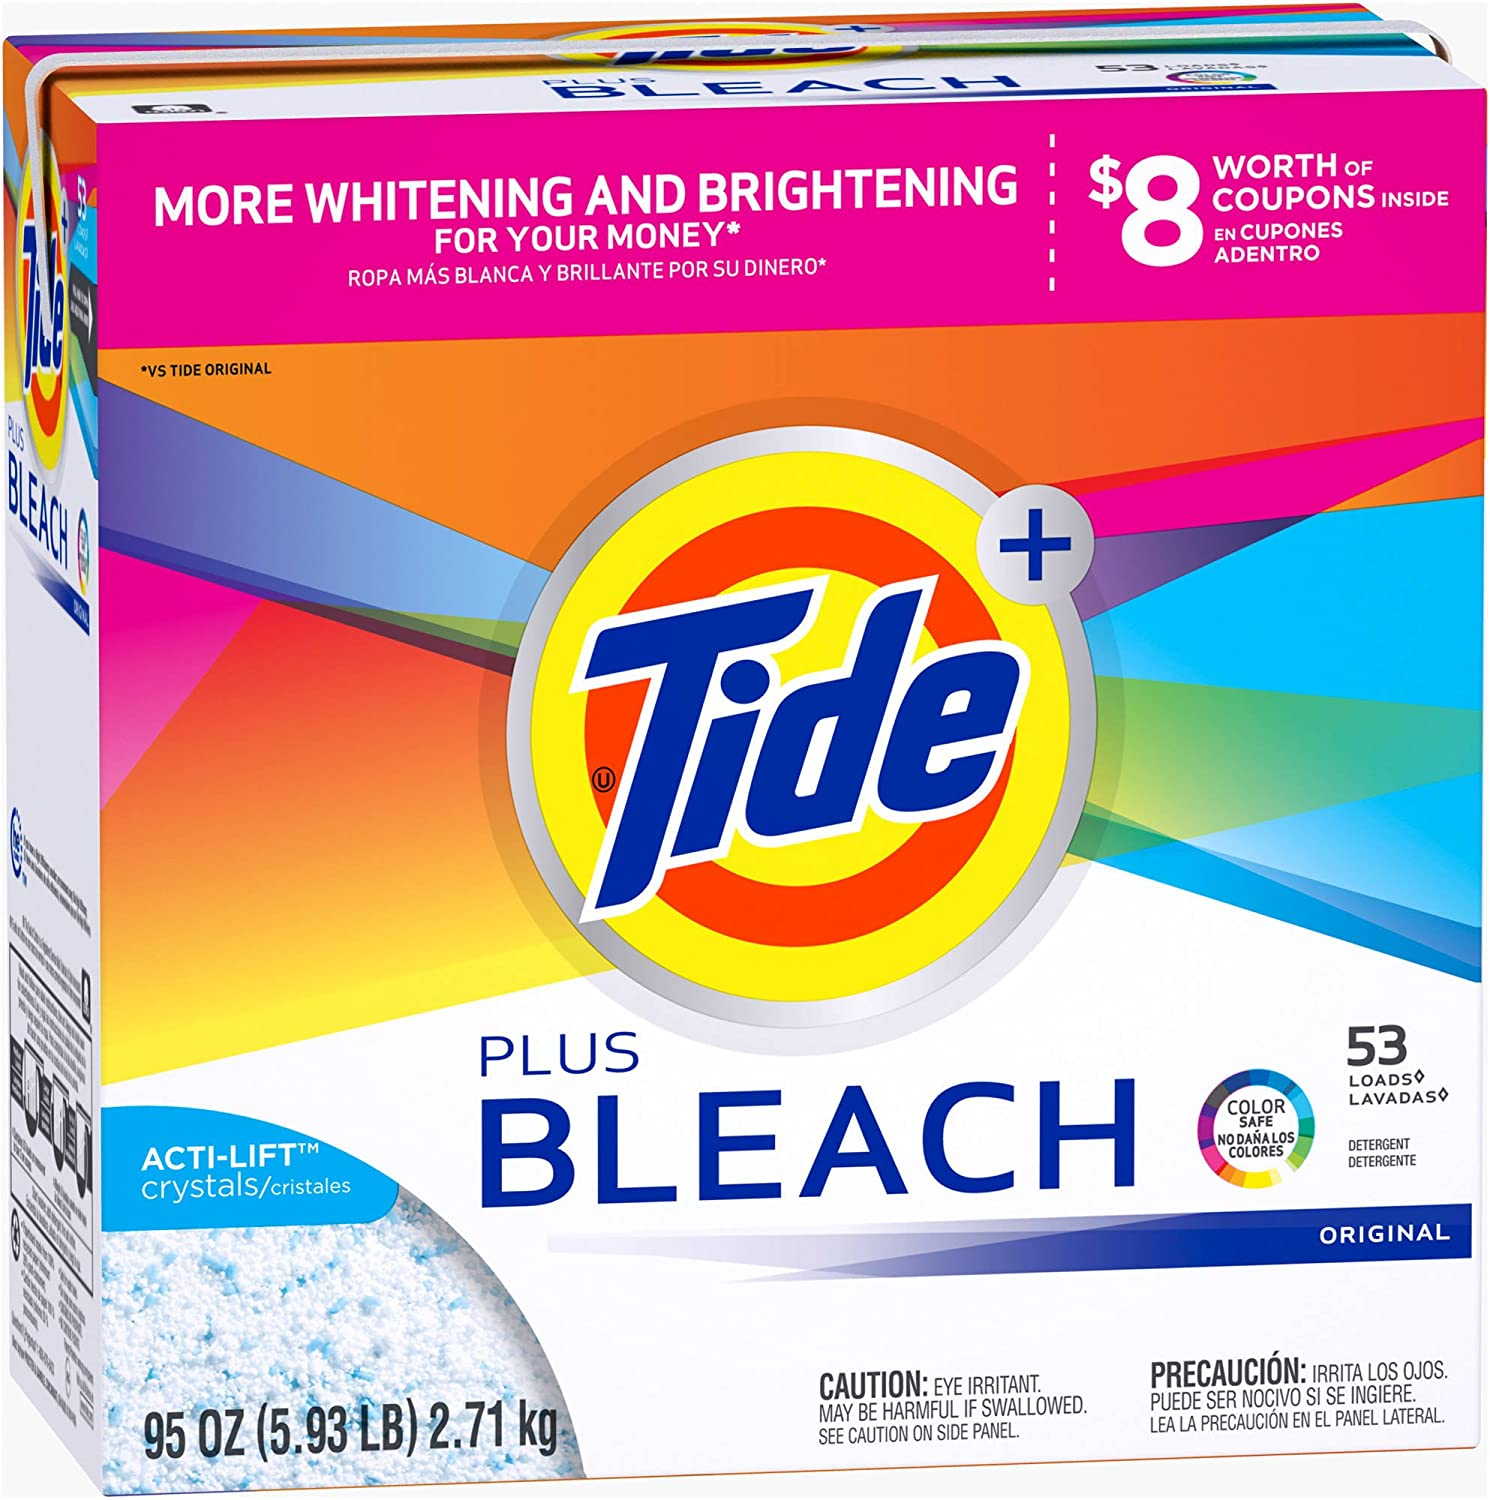 Tide Ultra Plus Bleach Original Scent Powder Laundry Detergent, 53 Loads, 95 oz